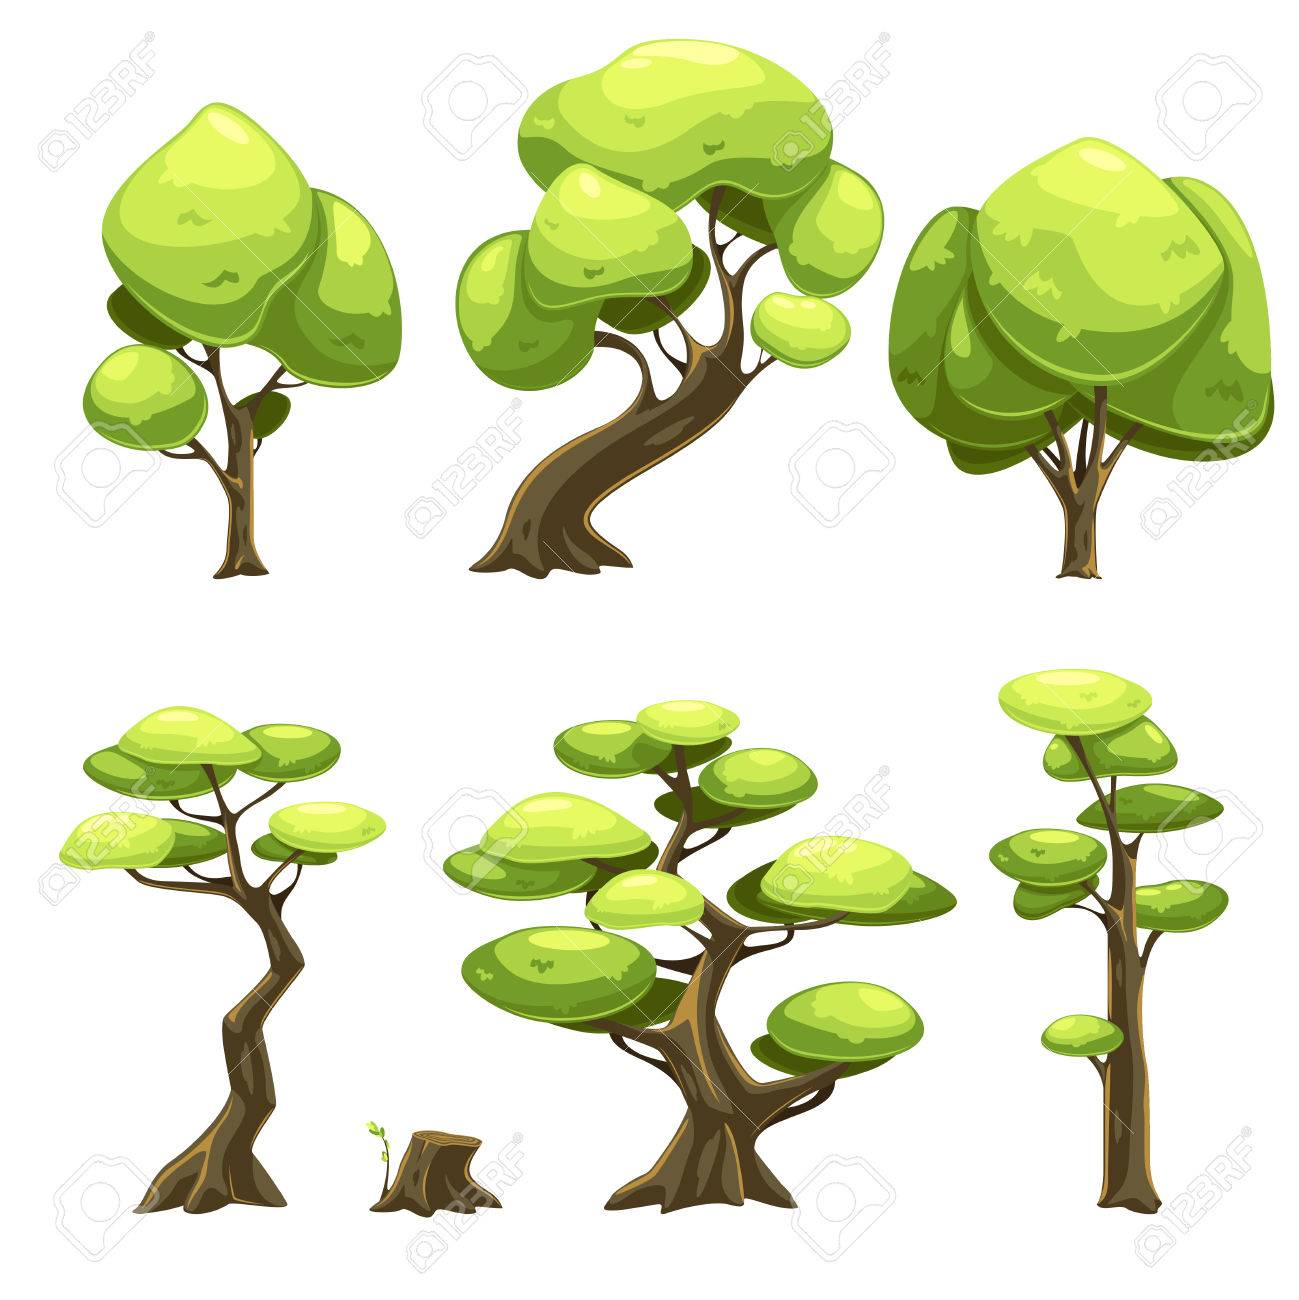 set of cartoon trees for web games vector illustration set